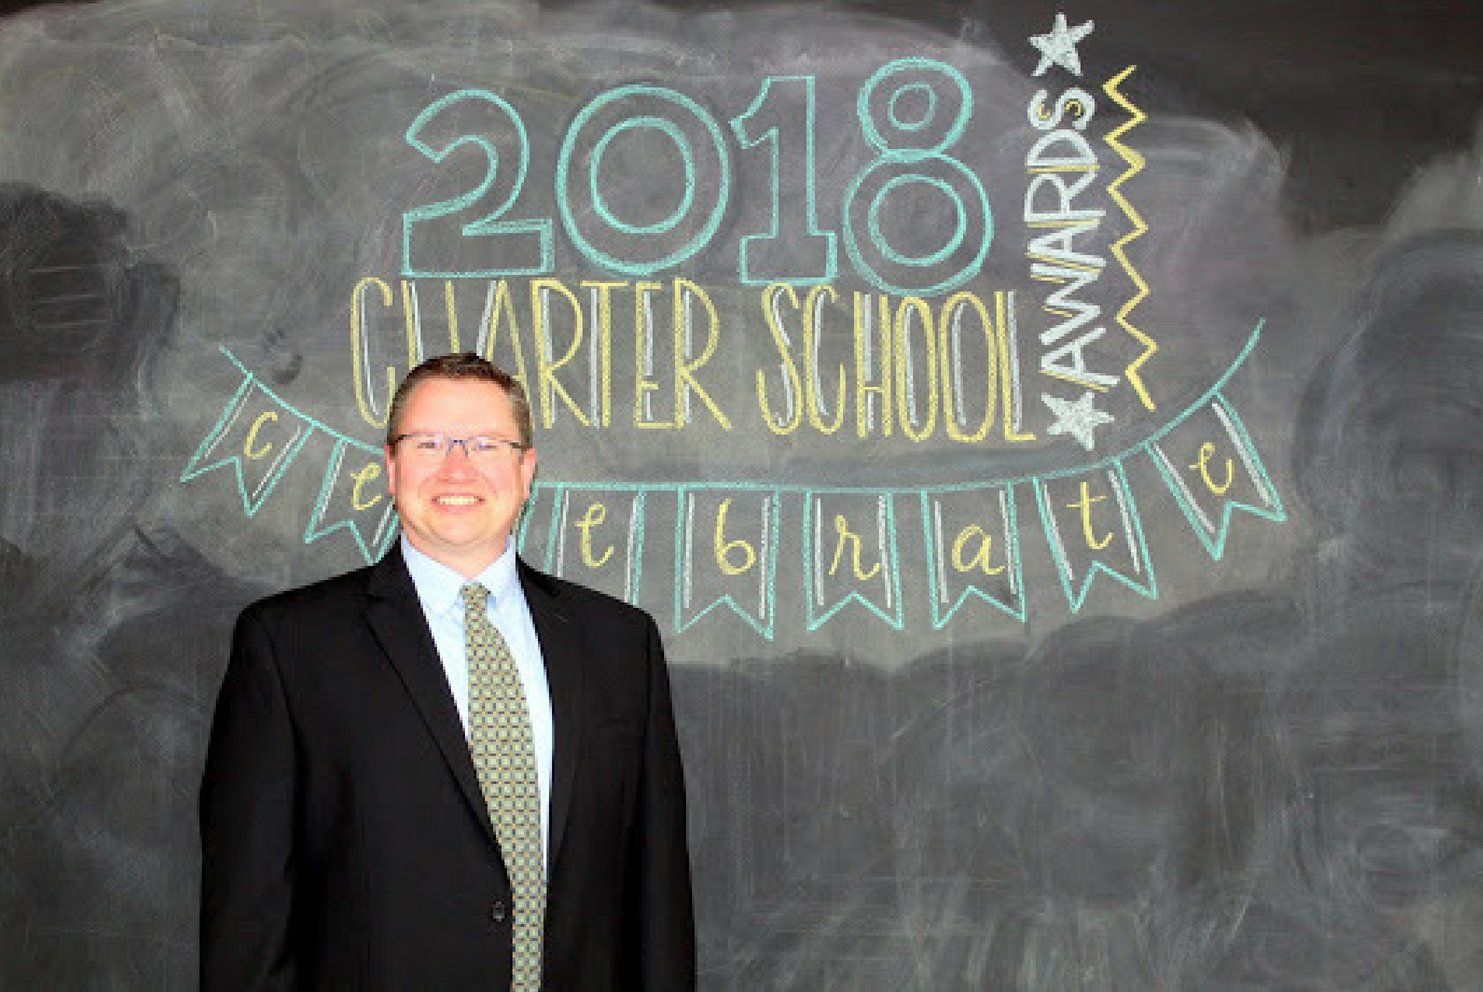 A photo of Bill Kraly, 2018 Charter School Admin of the Year finalist.